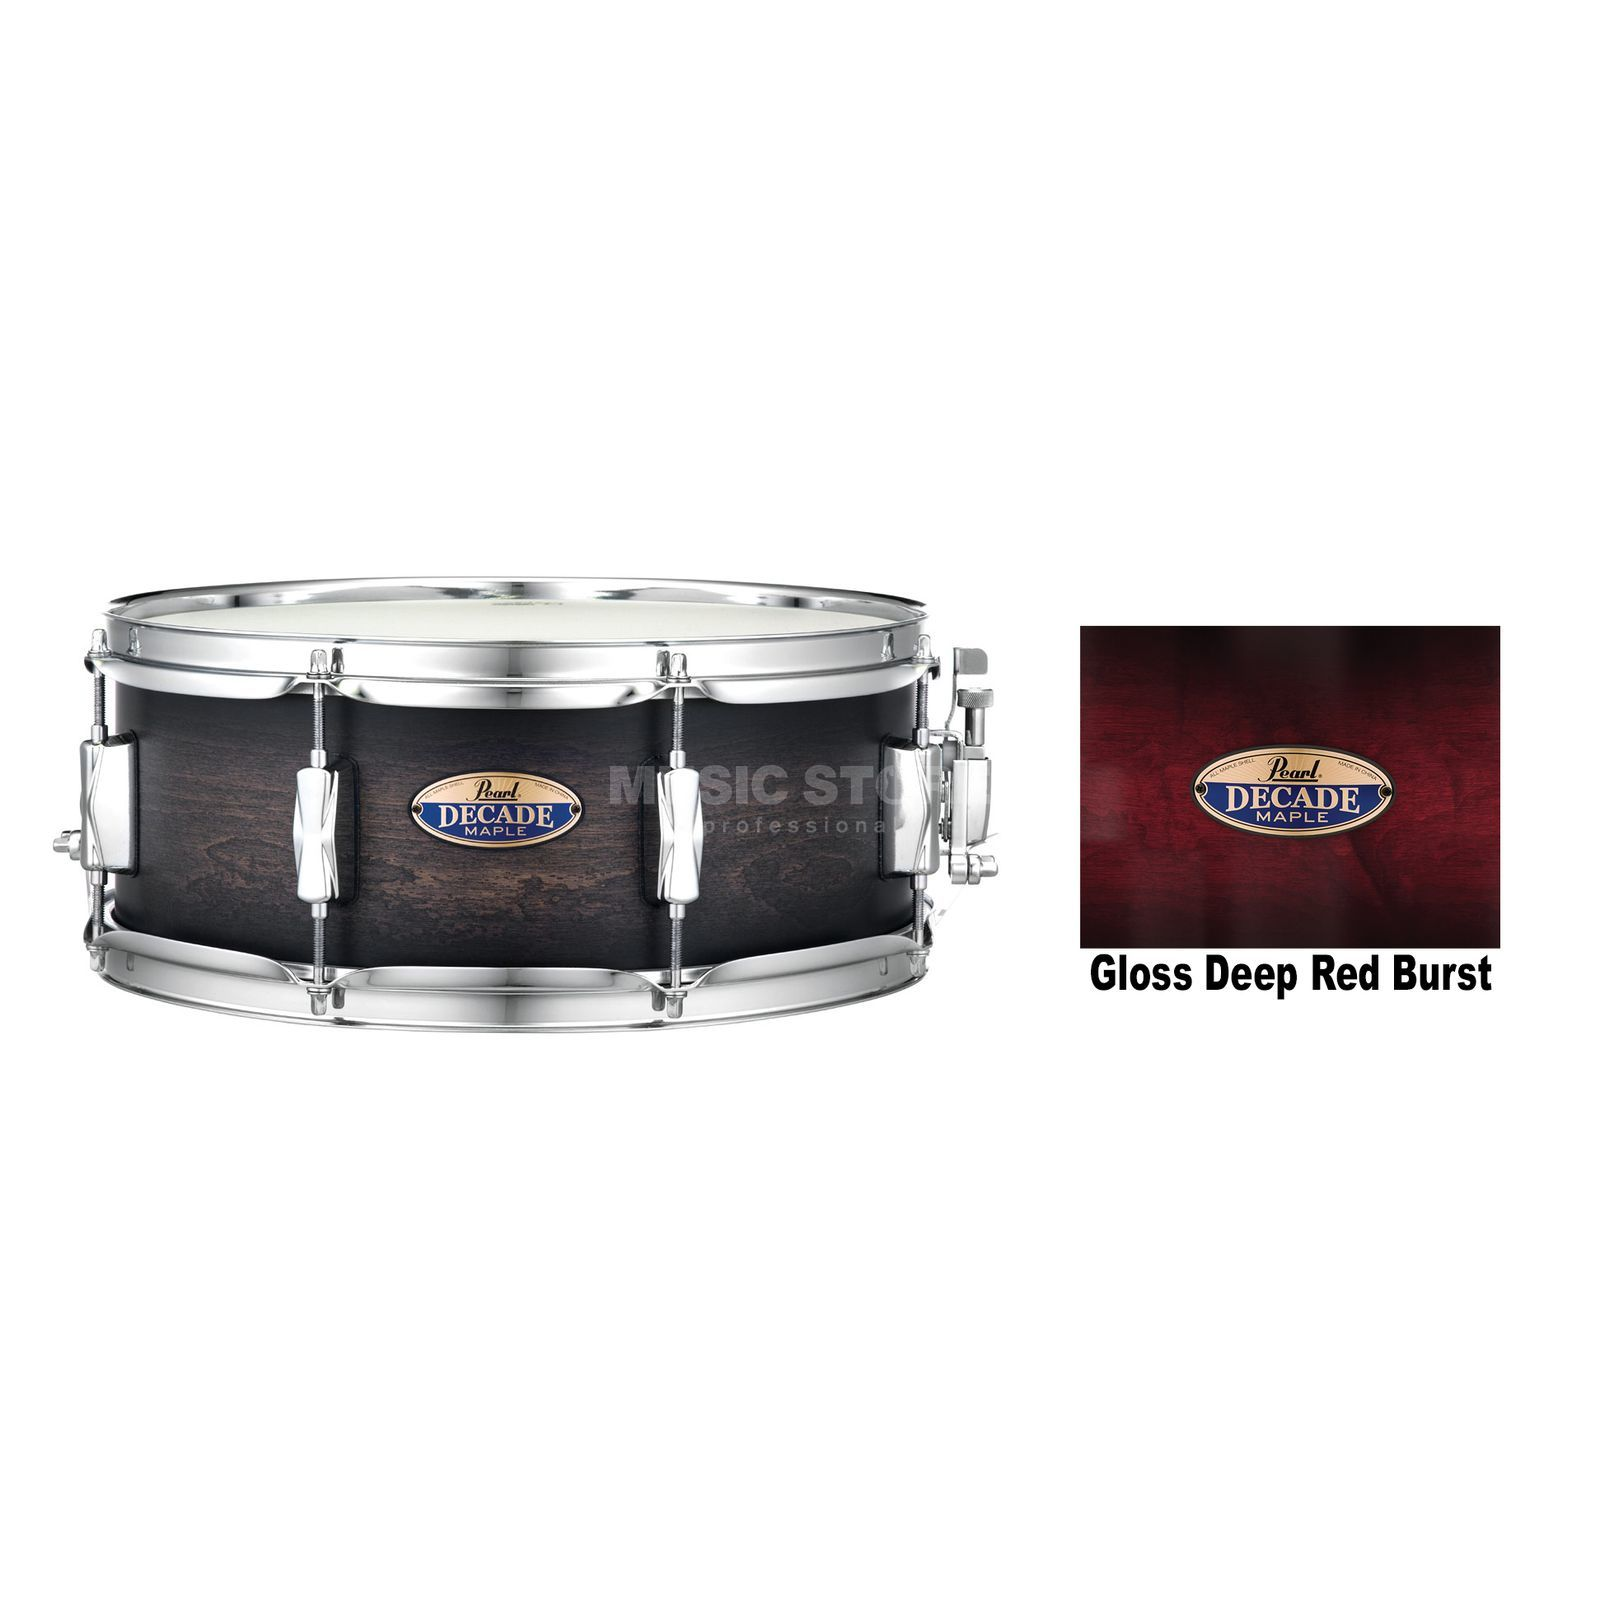 "Pearl Decade Maple Snare 14""x5,5"", Gloss Deep Red Burst #261 Produktbild"